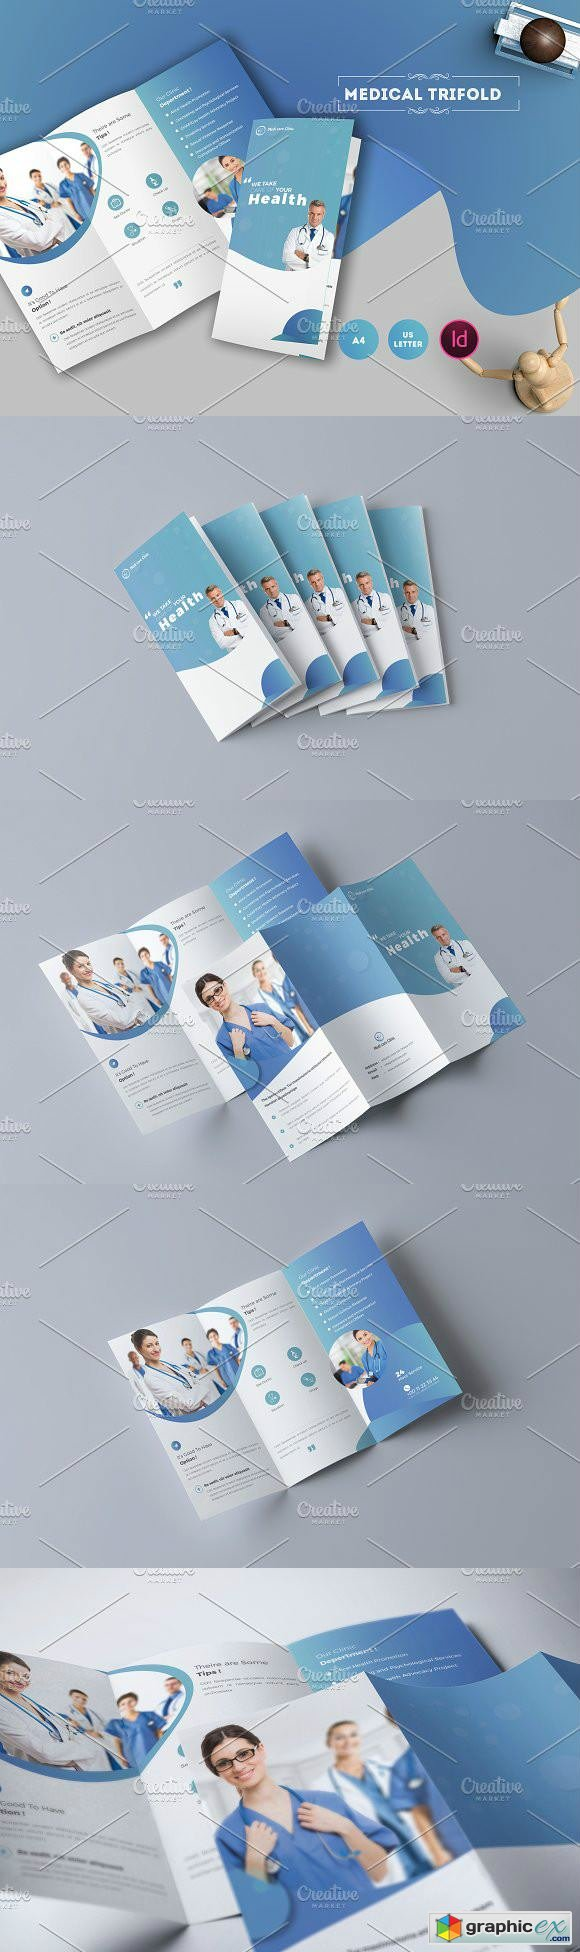 Medical Trifold Brochure 1693678